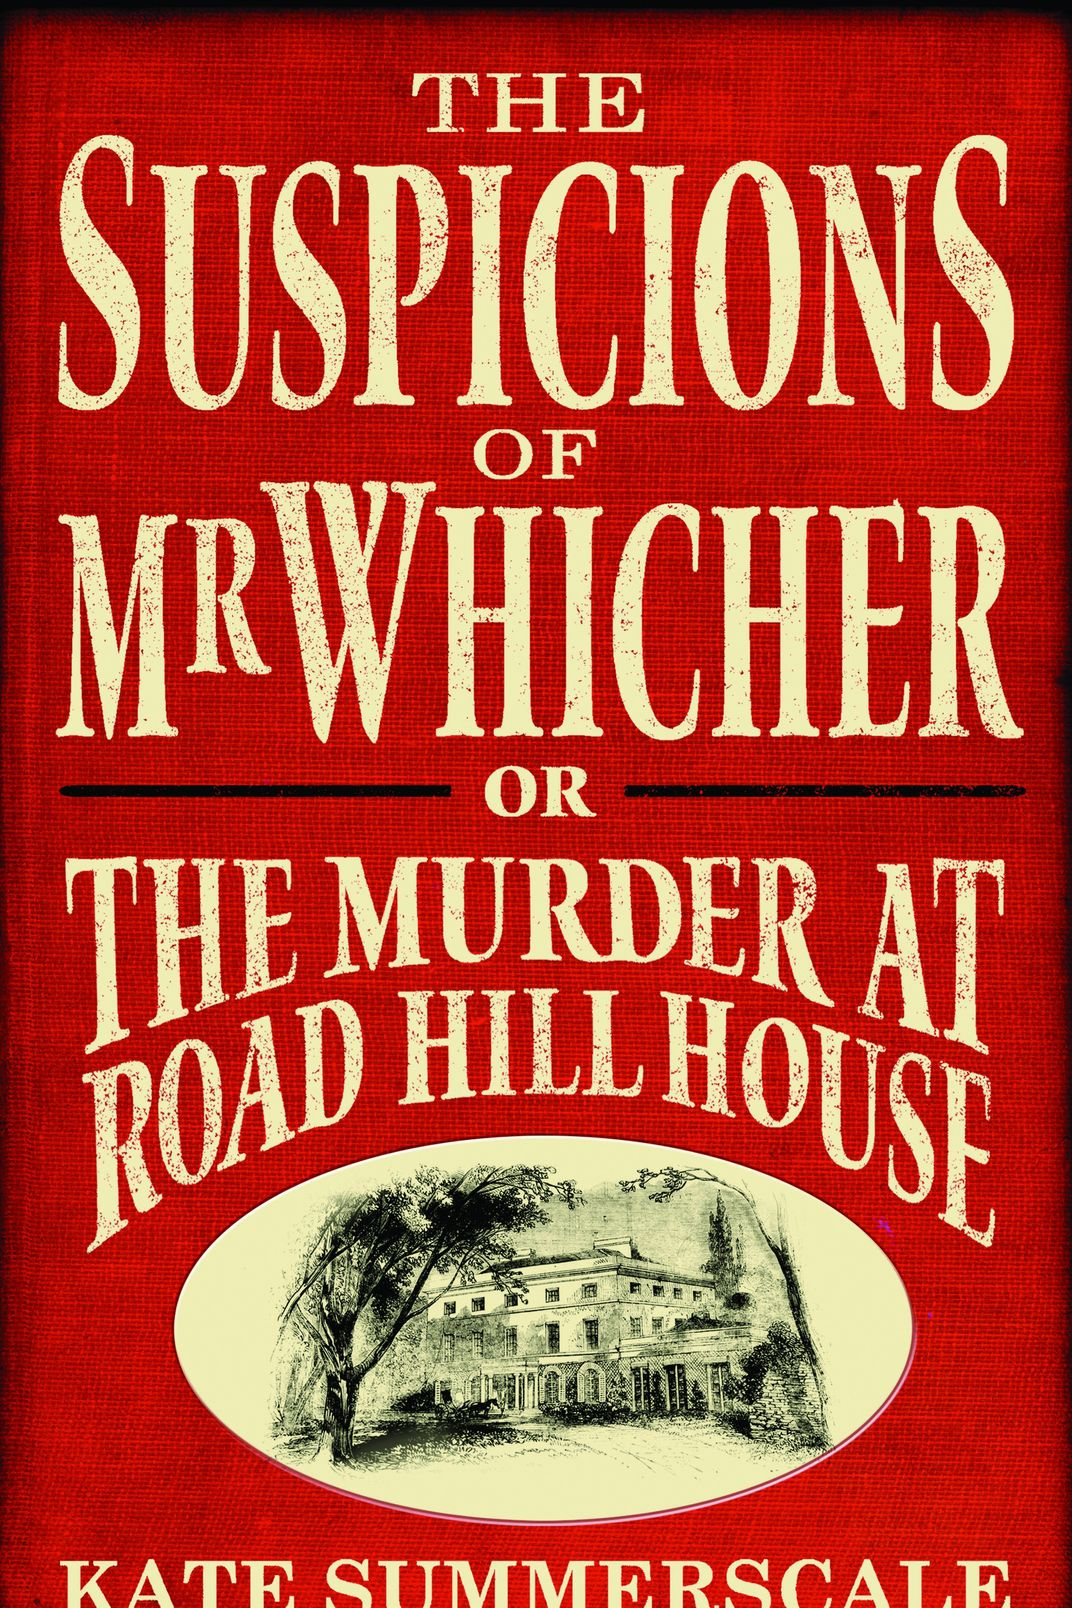 517752b3f2de Summerscale deservedly racked up accolades for her suspenseful narrative  account of the 1860 Road Hill House murder case and its devastating effect  upon ...